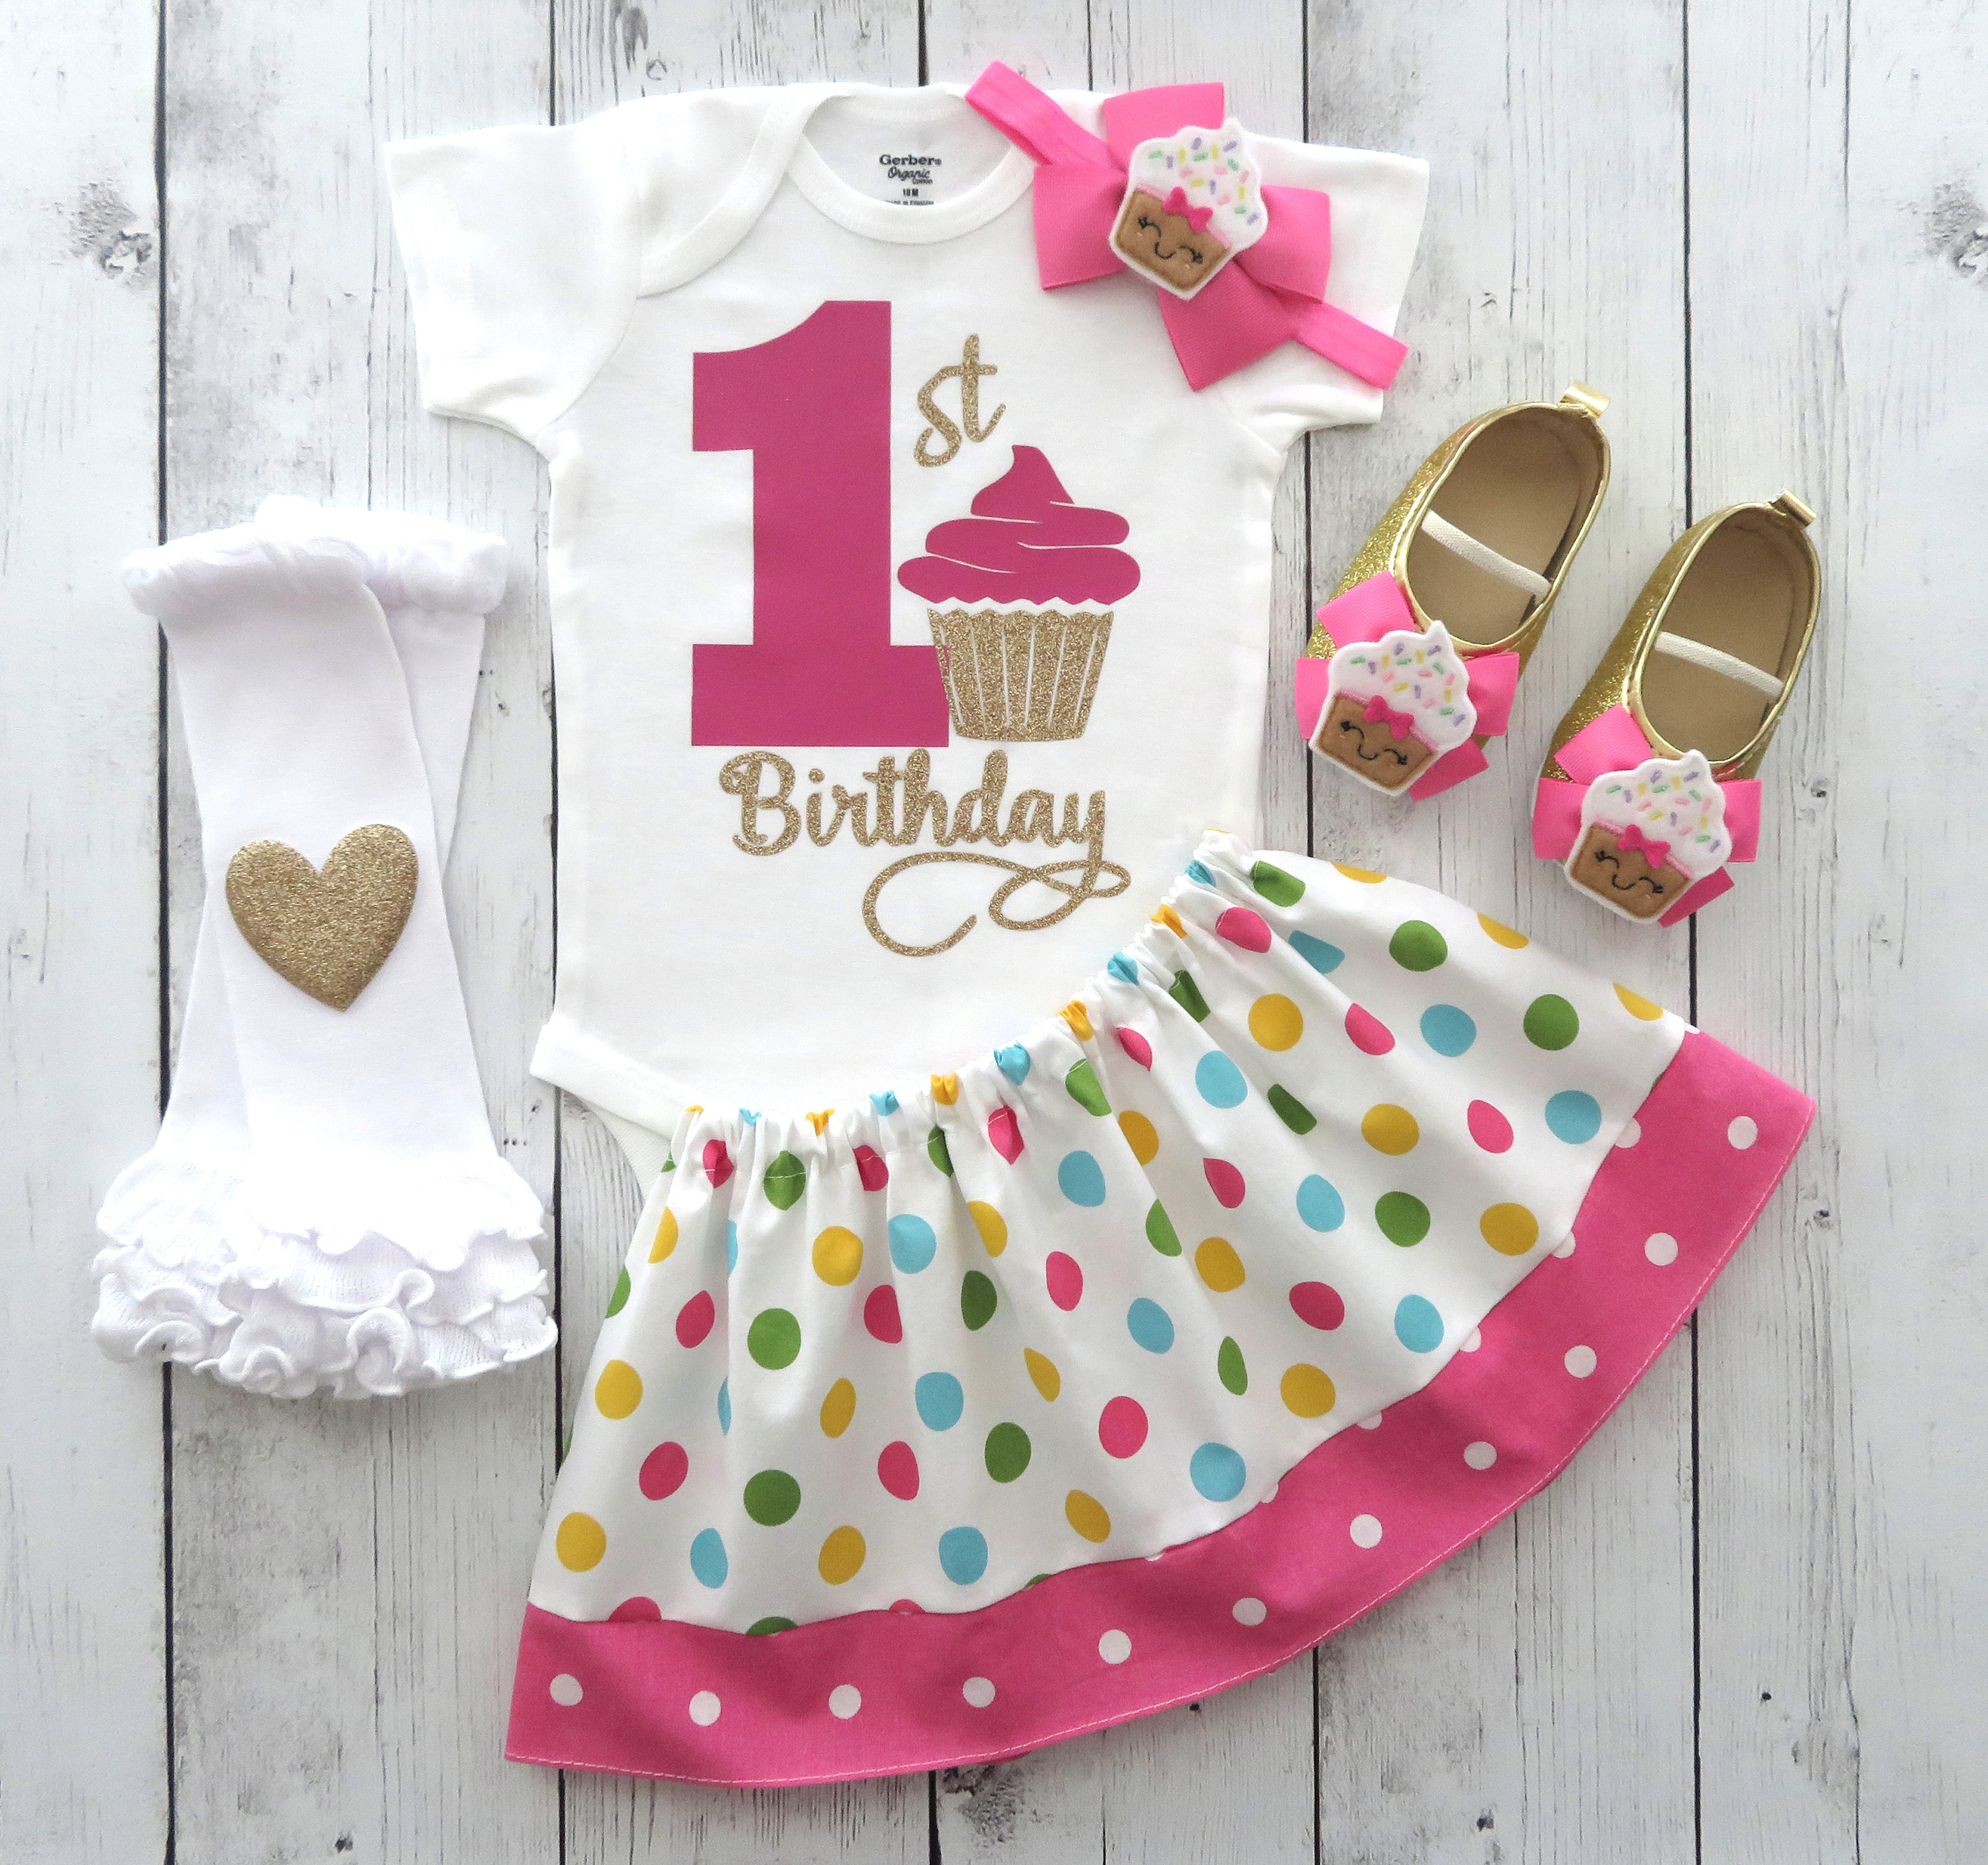 First Birthday Outfit in colorful pink polka dot print - sweet one, 1st bday outfit girl, pink and gold, cupcake birthday, cupcake shoes